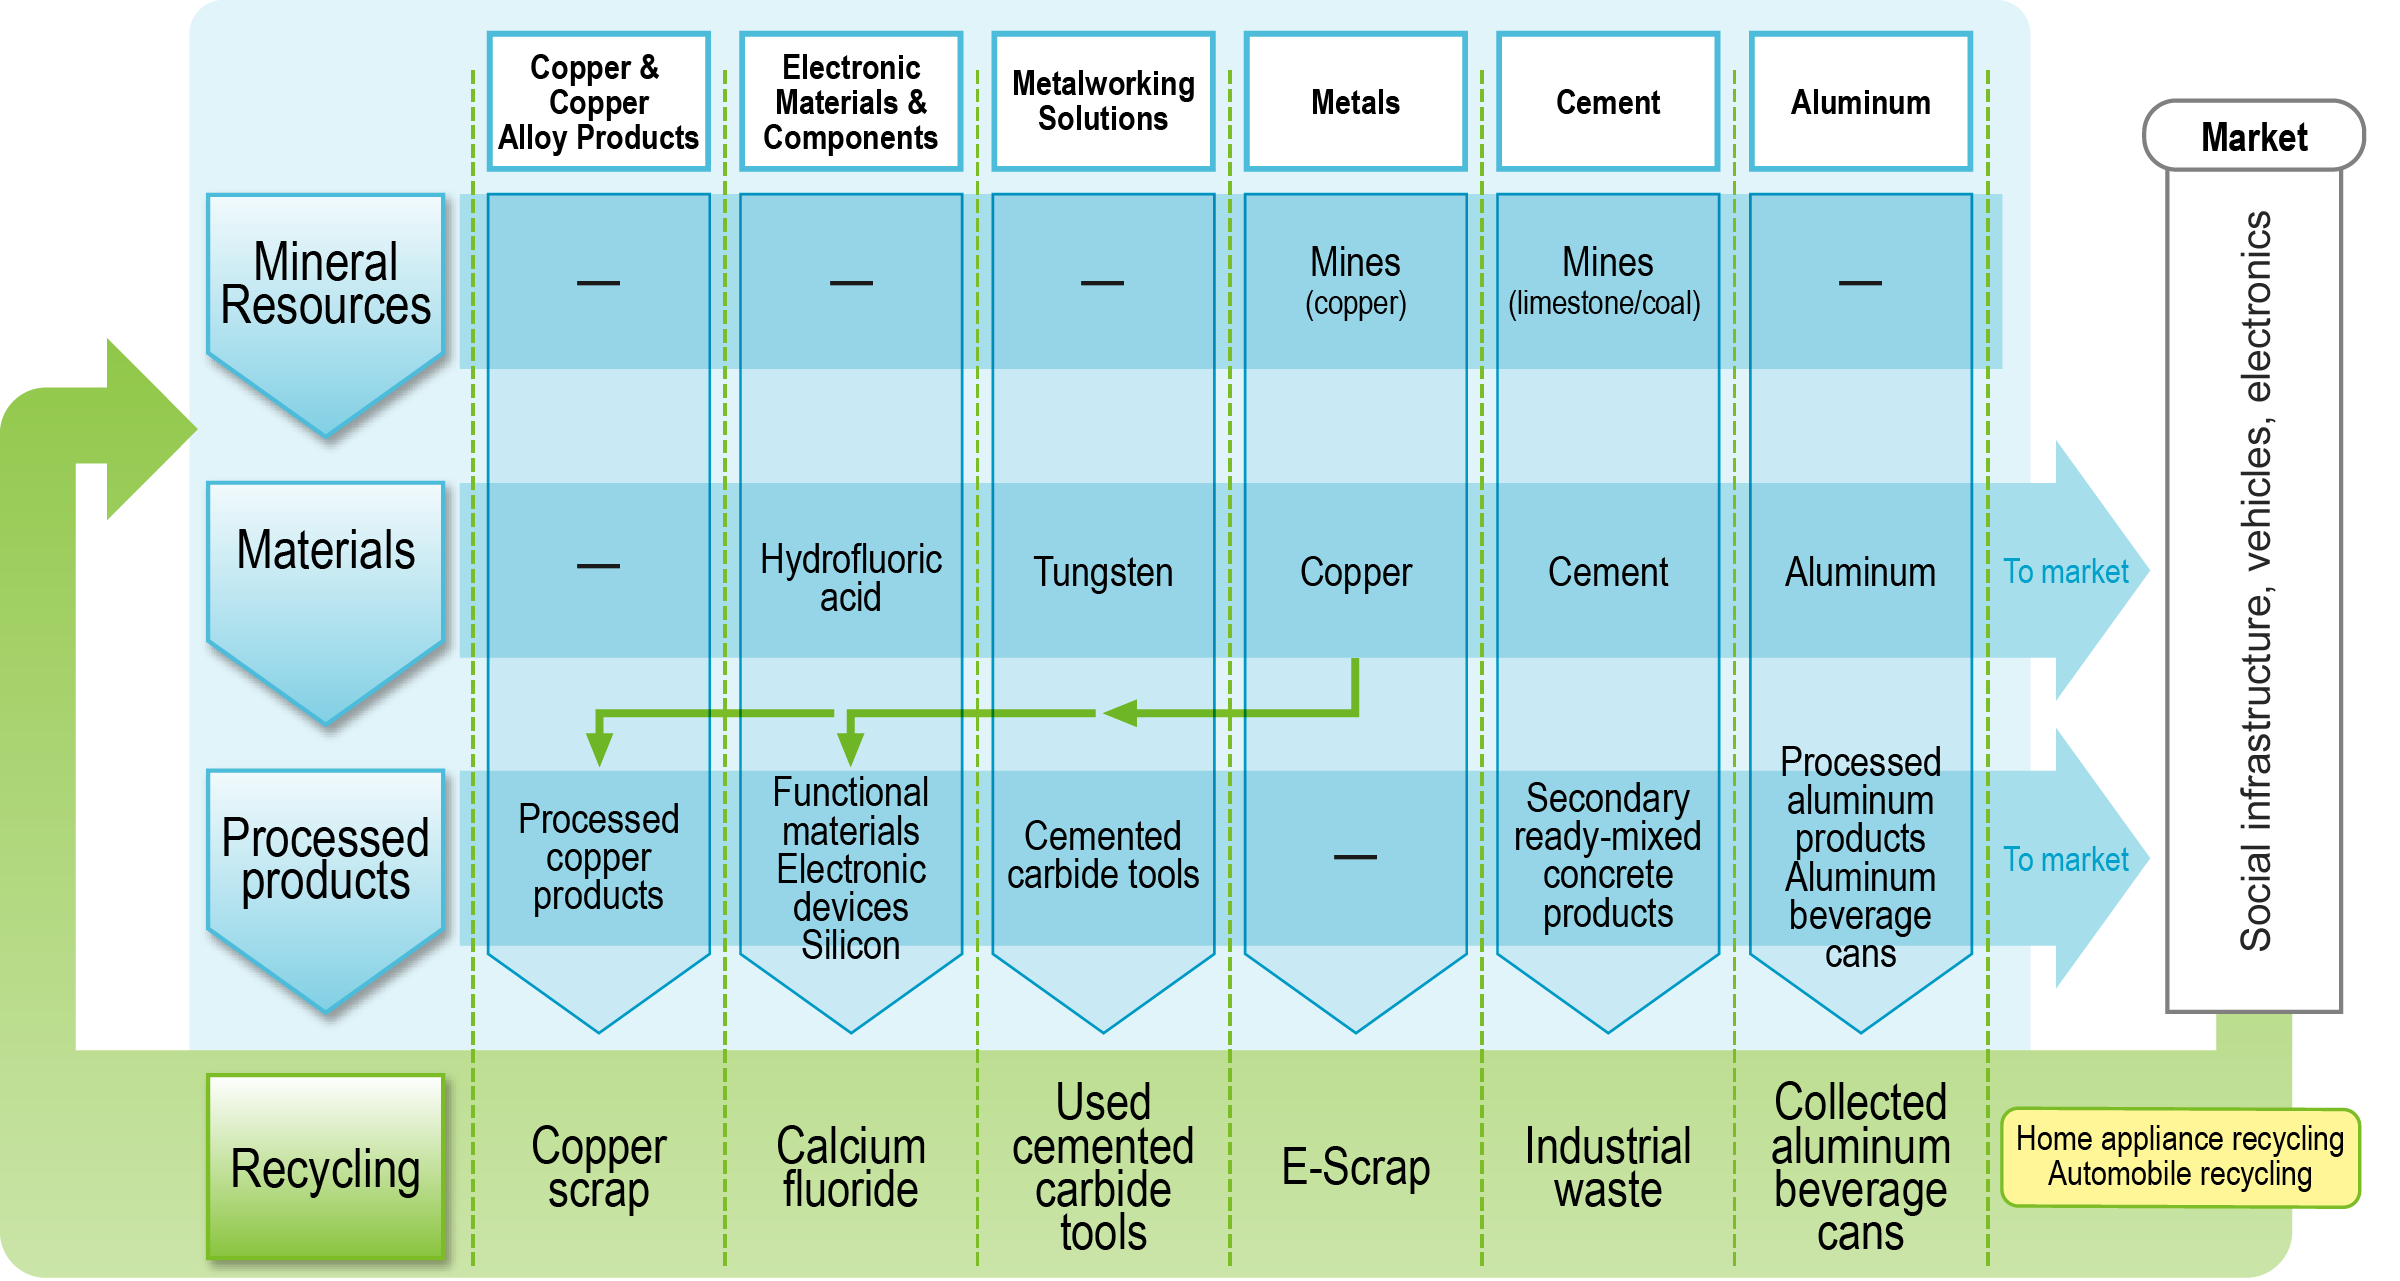 Recycling-oriented business model (by segment)